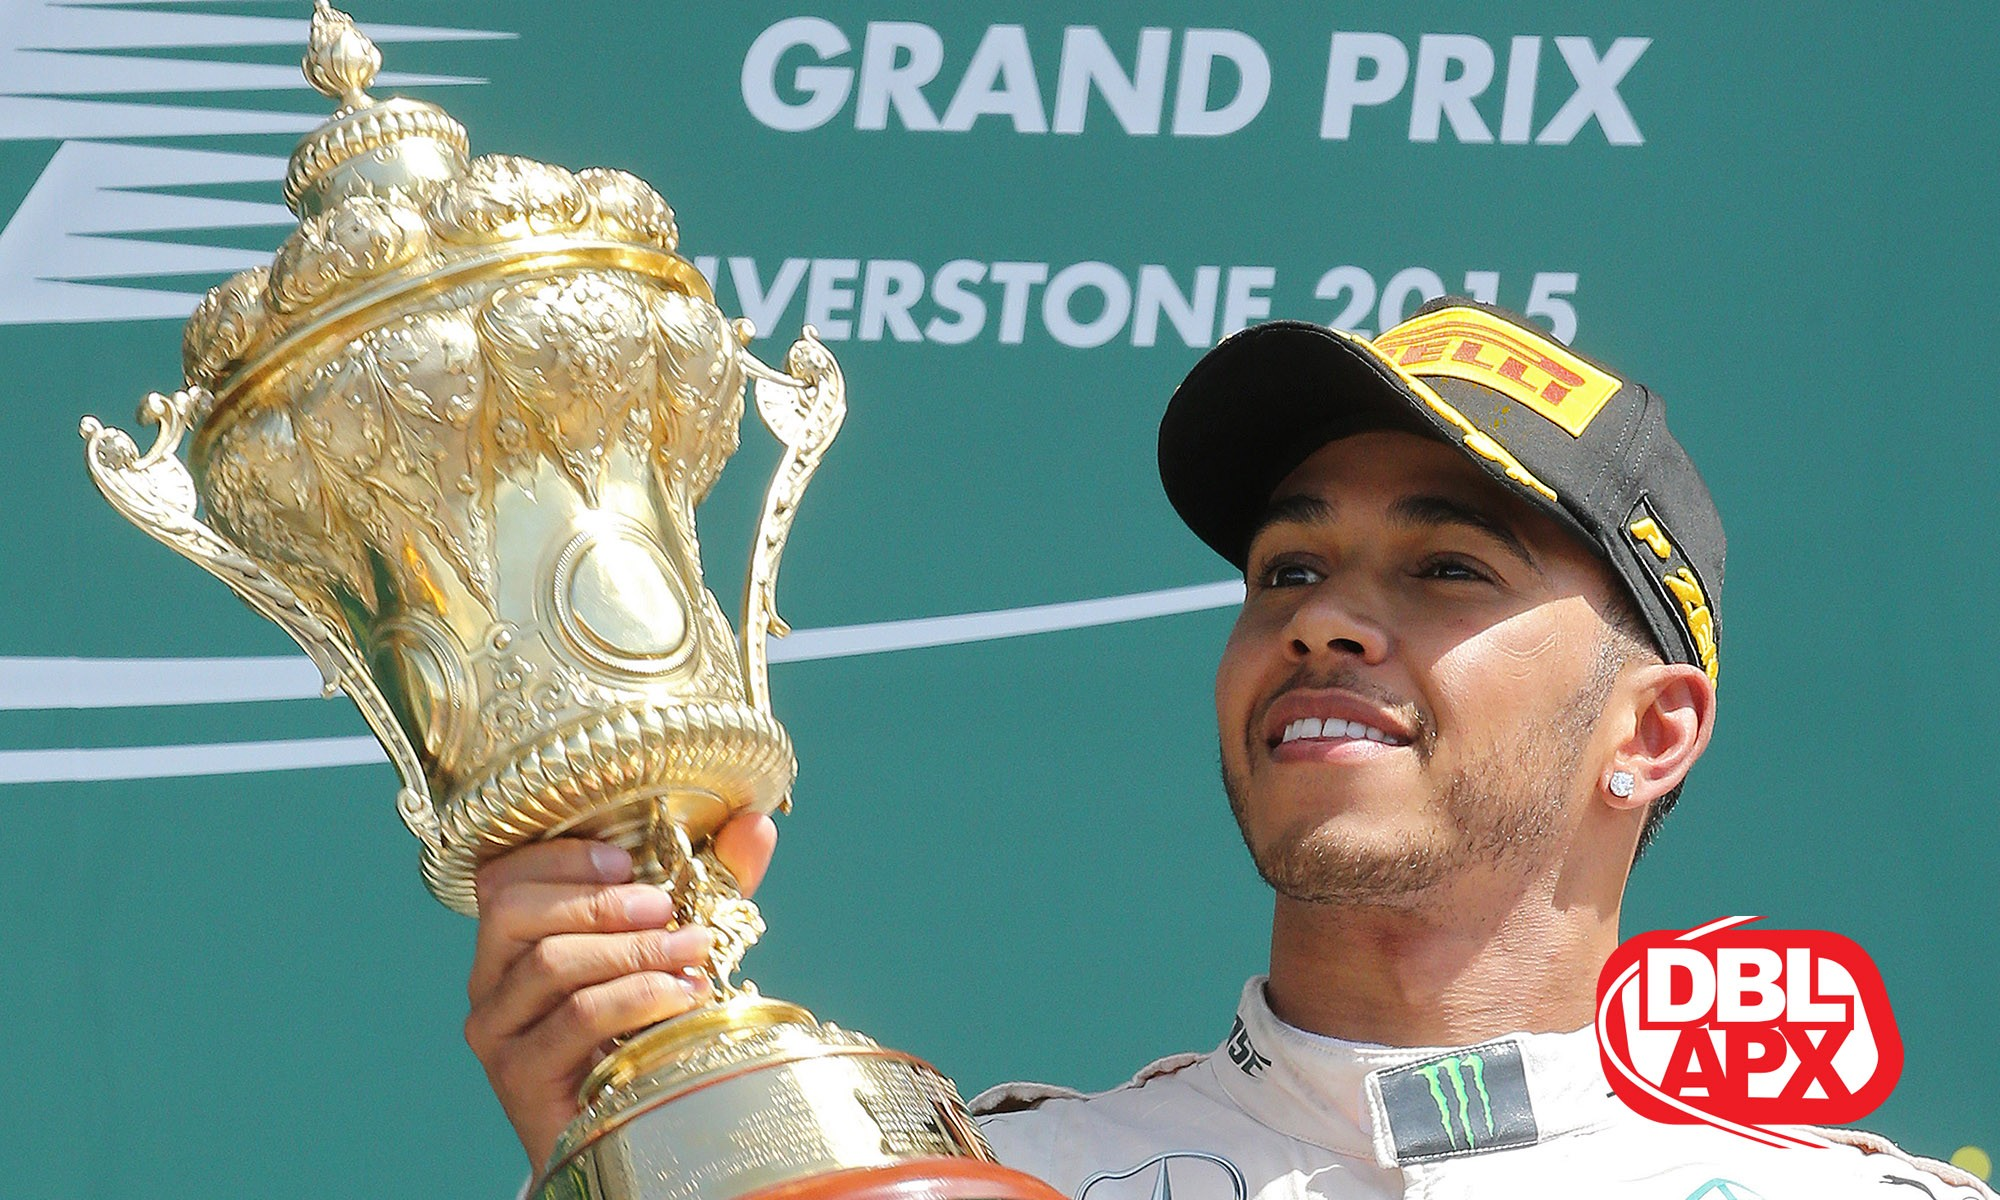 Lewis Hamilton relishes racing at home